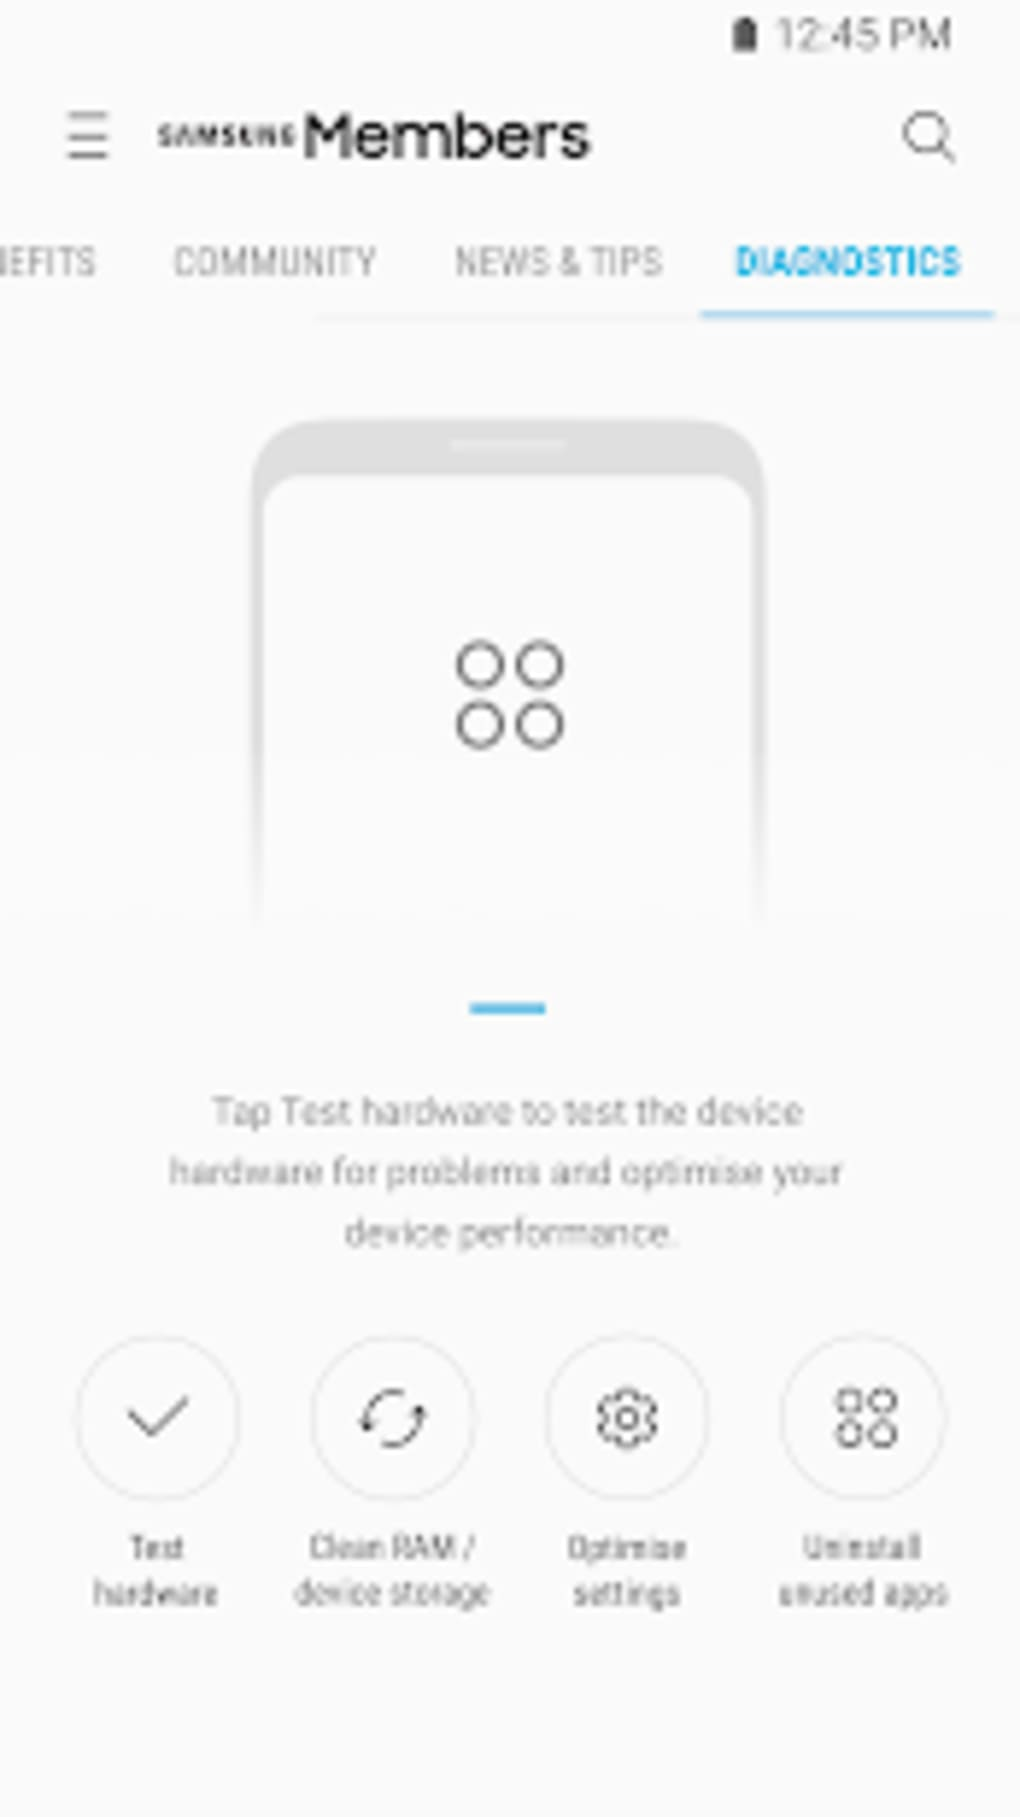 Samsung Members for Android - Download